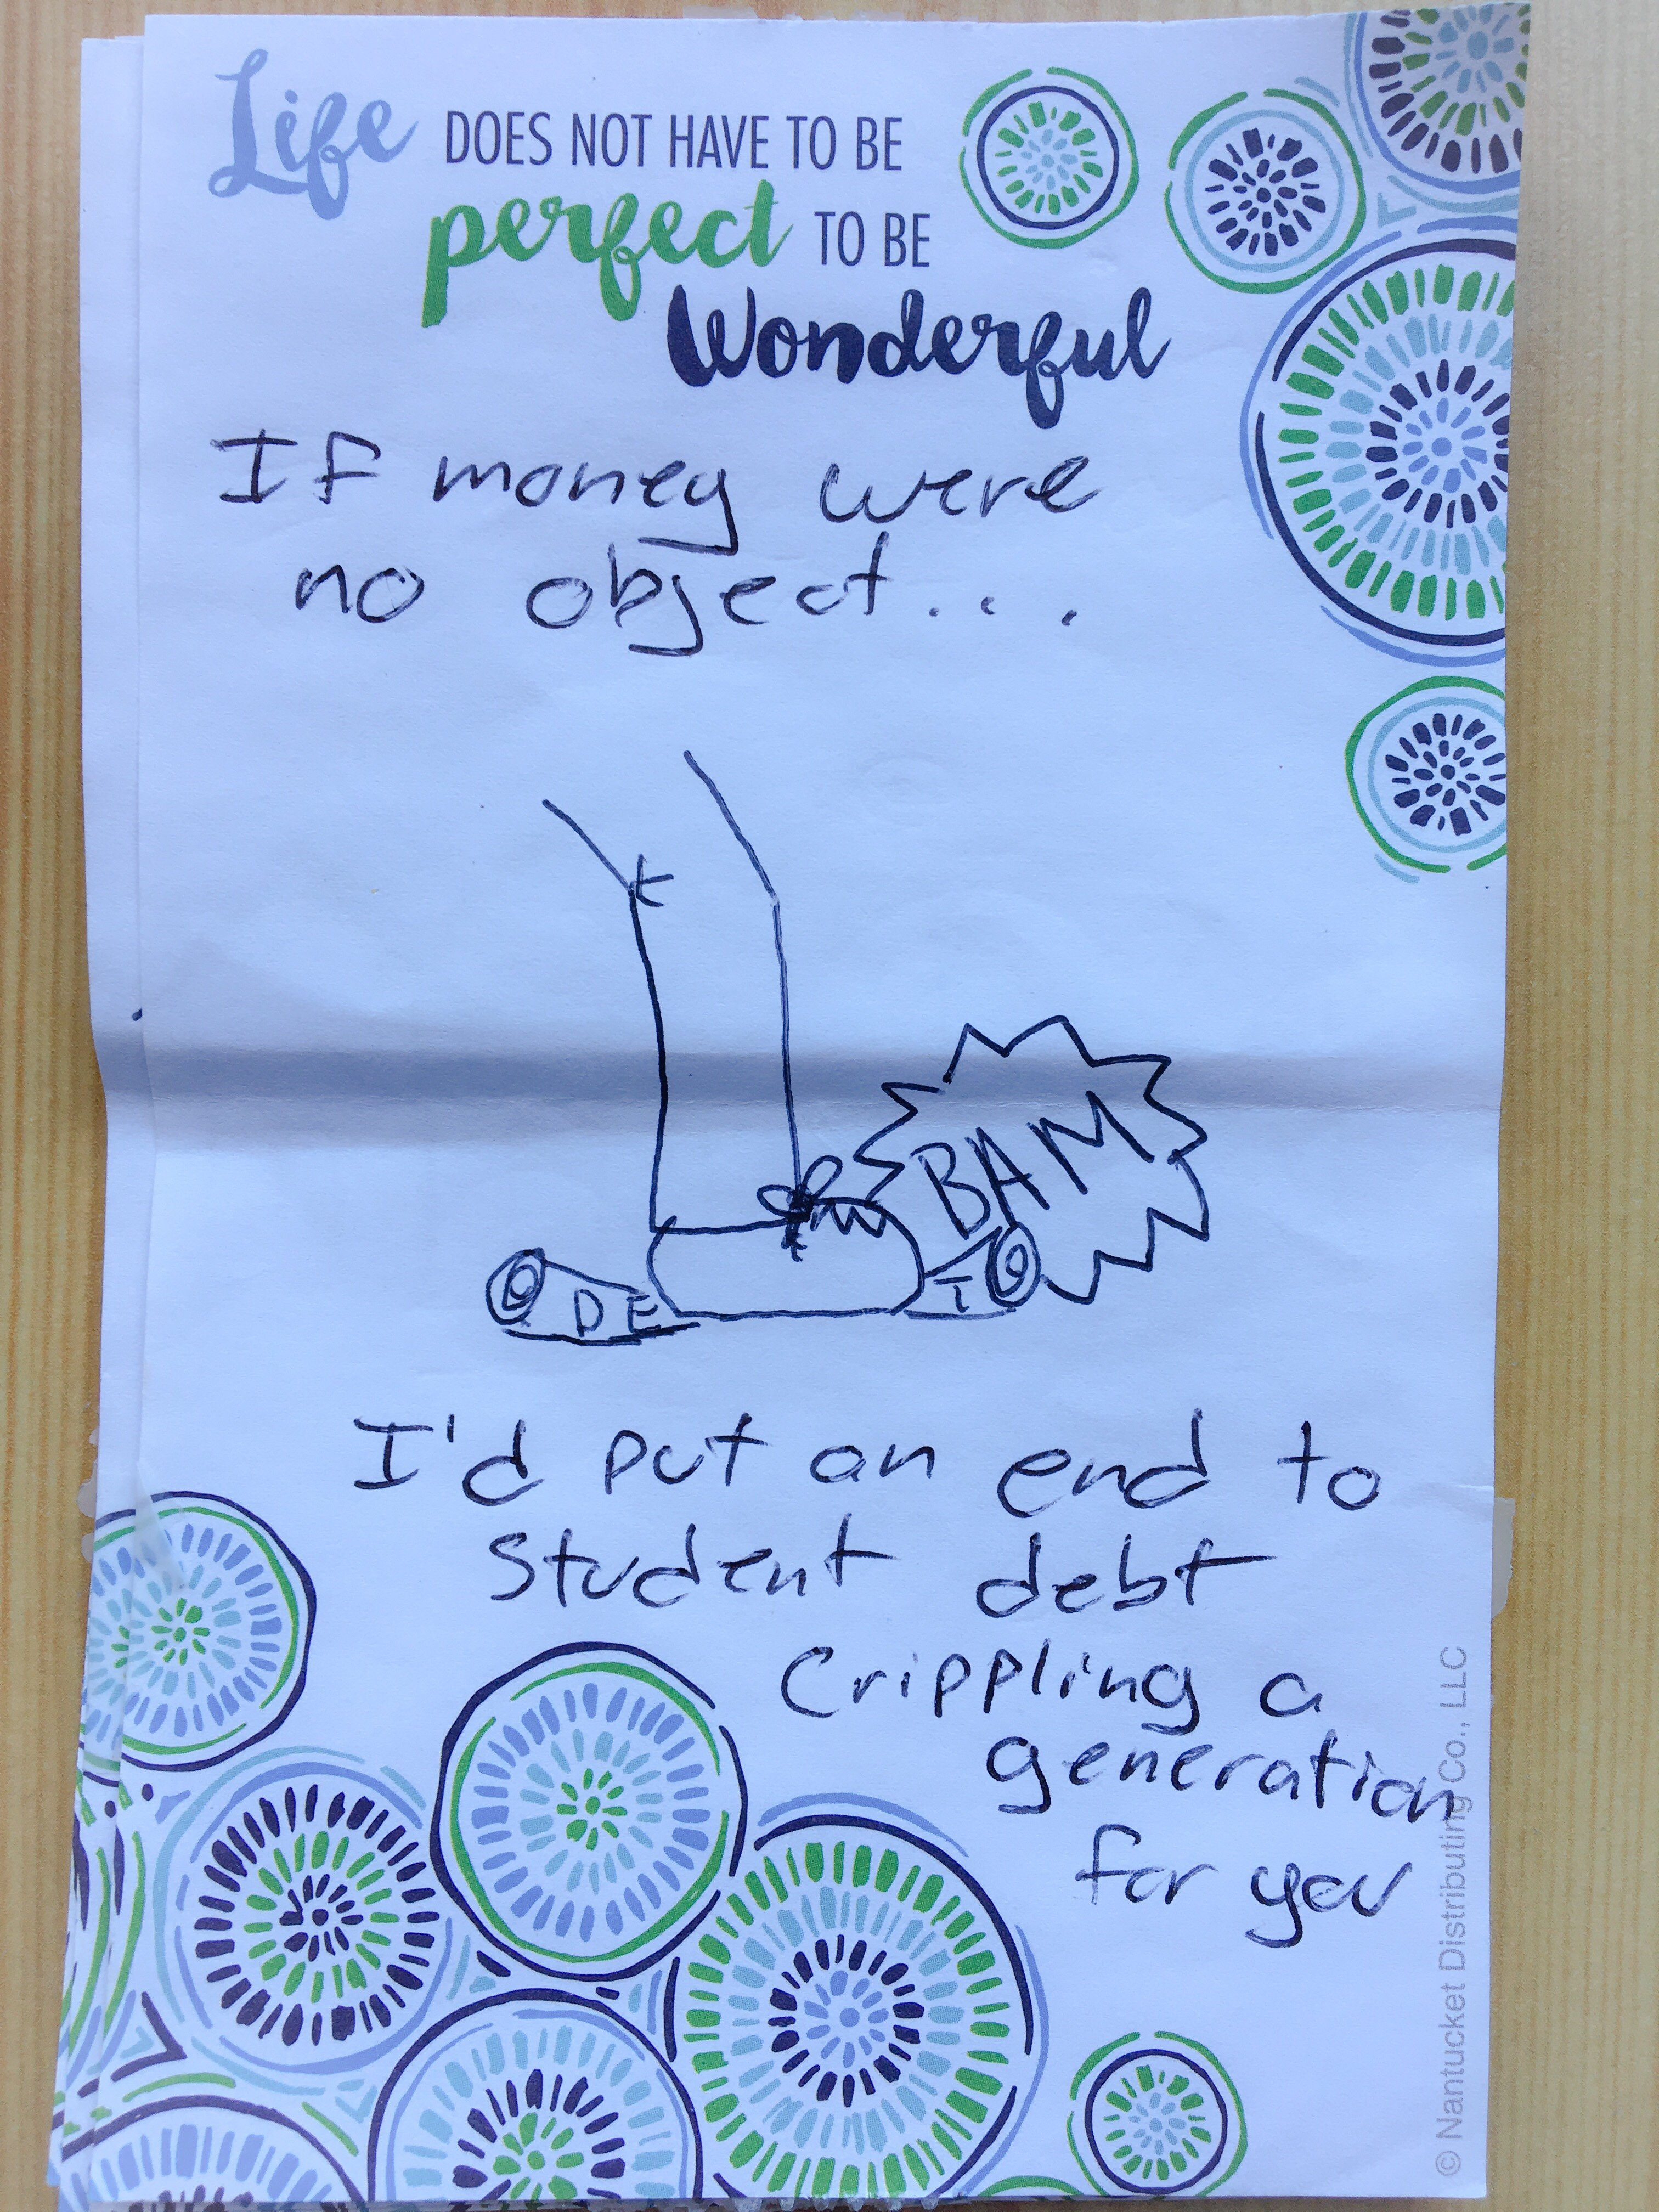 If money were no object, I'd put an end to student debt crippling a generation for you.